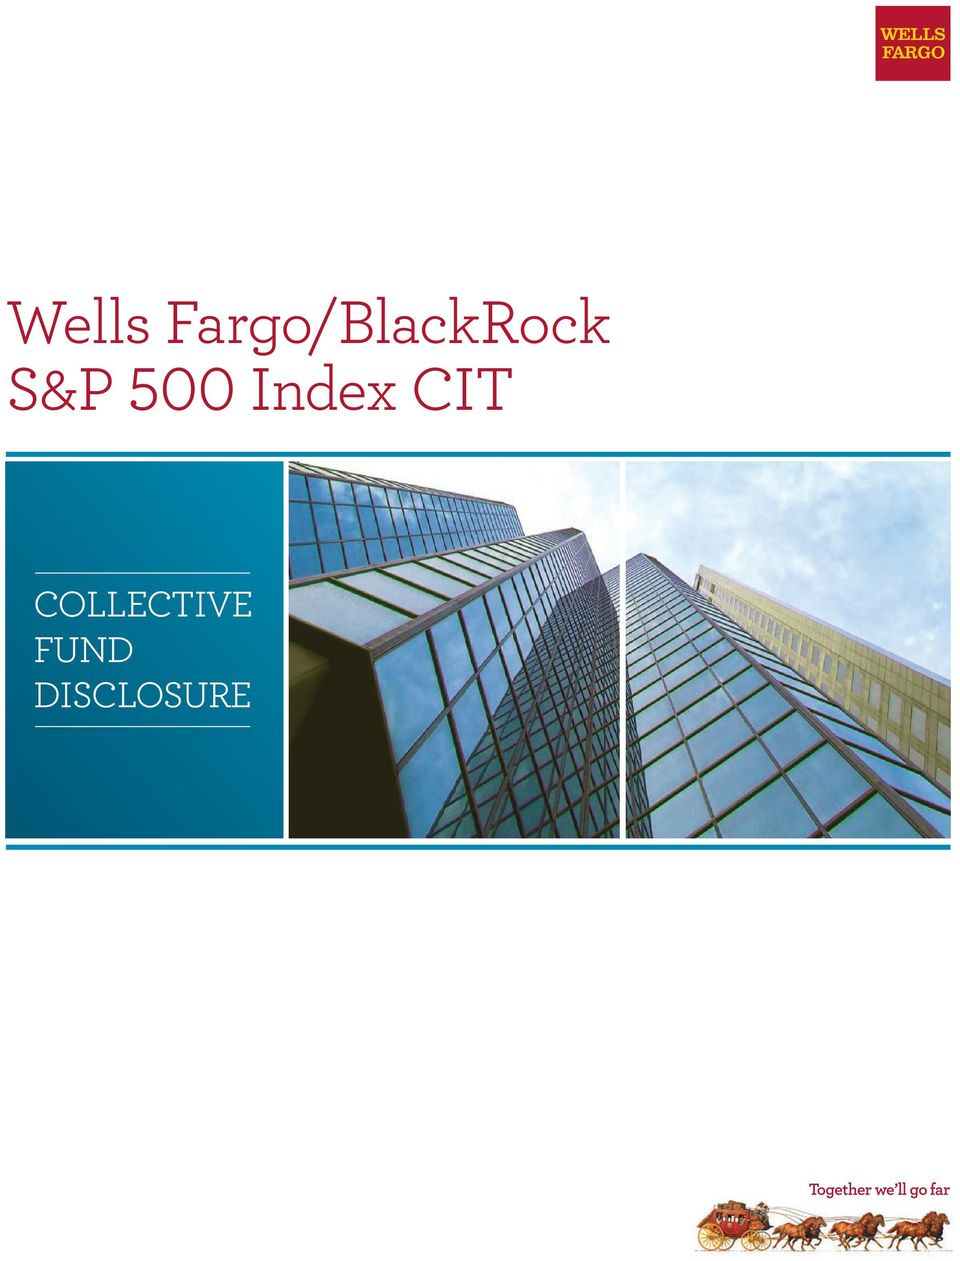 Wells Fargoblackrock Sp 500 Index Cit Collective Fund Disclosure Pdf